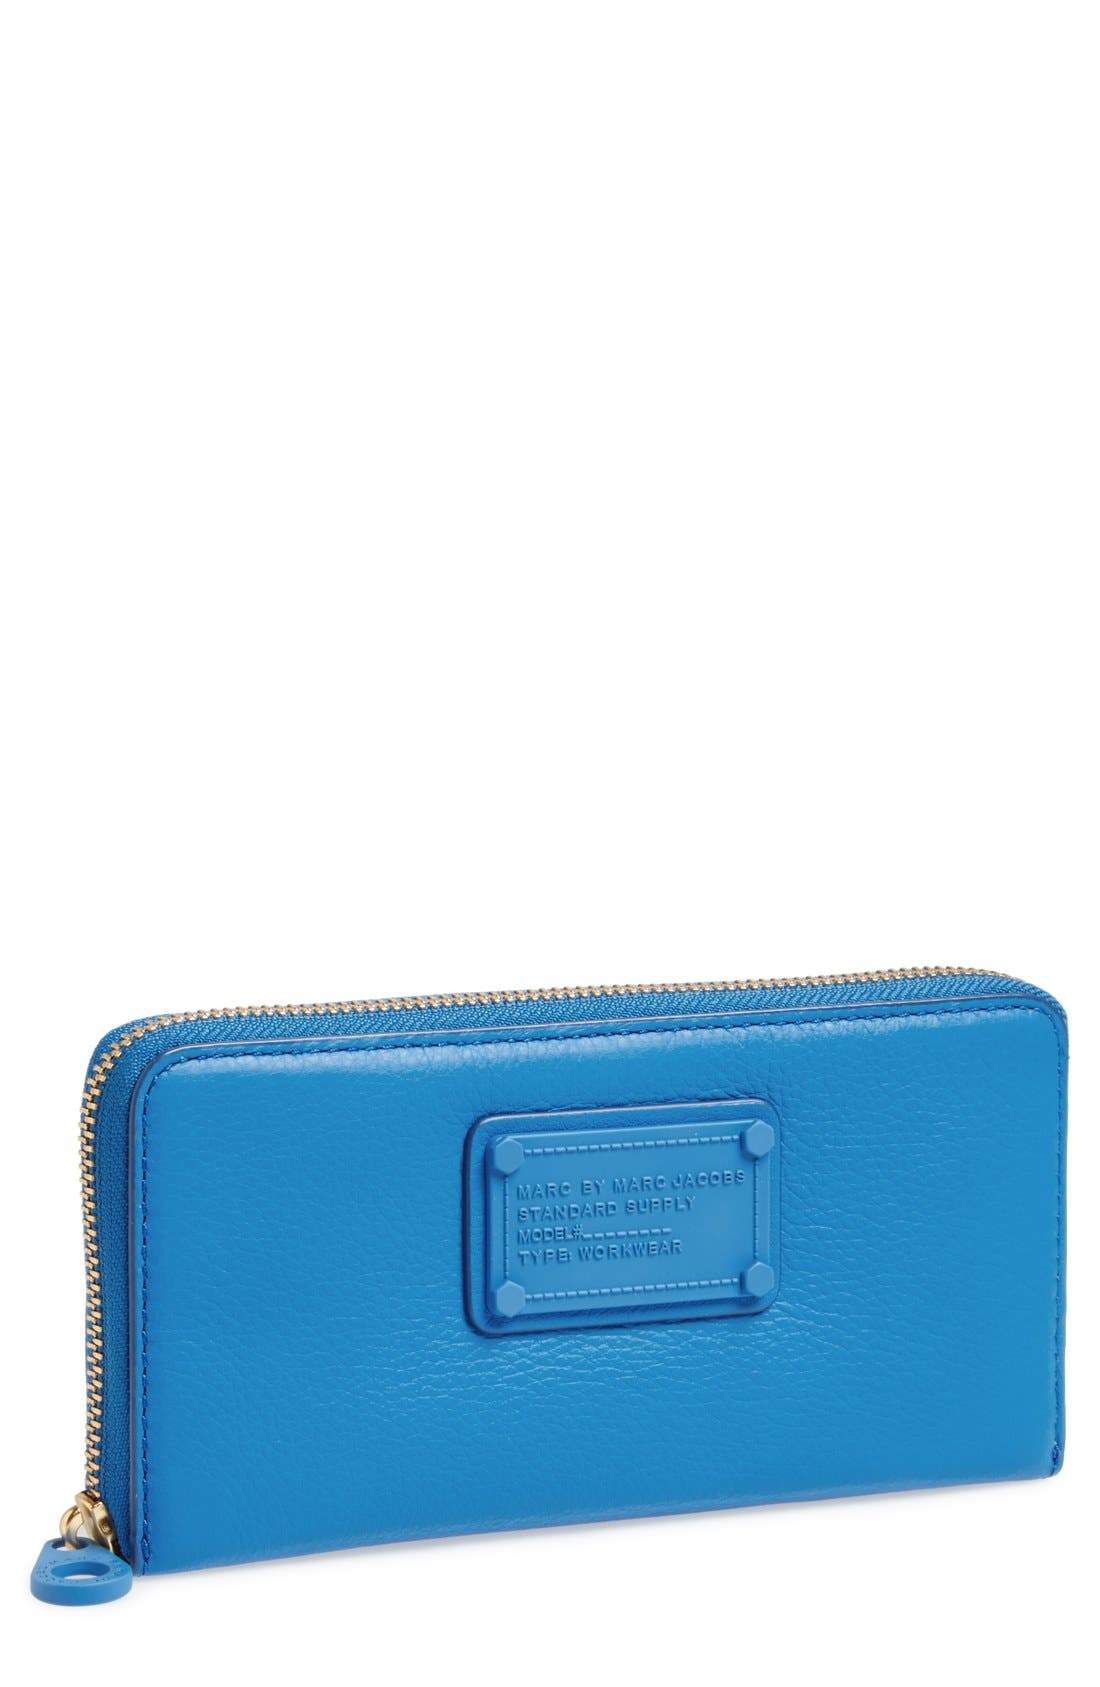 Alternate Image 1 Selected - MARC BY MARC JACOBS 'Electro Q - Vertical Zippy' Leather Wallet